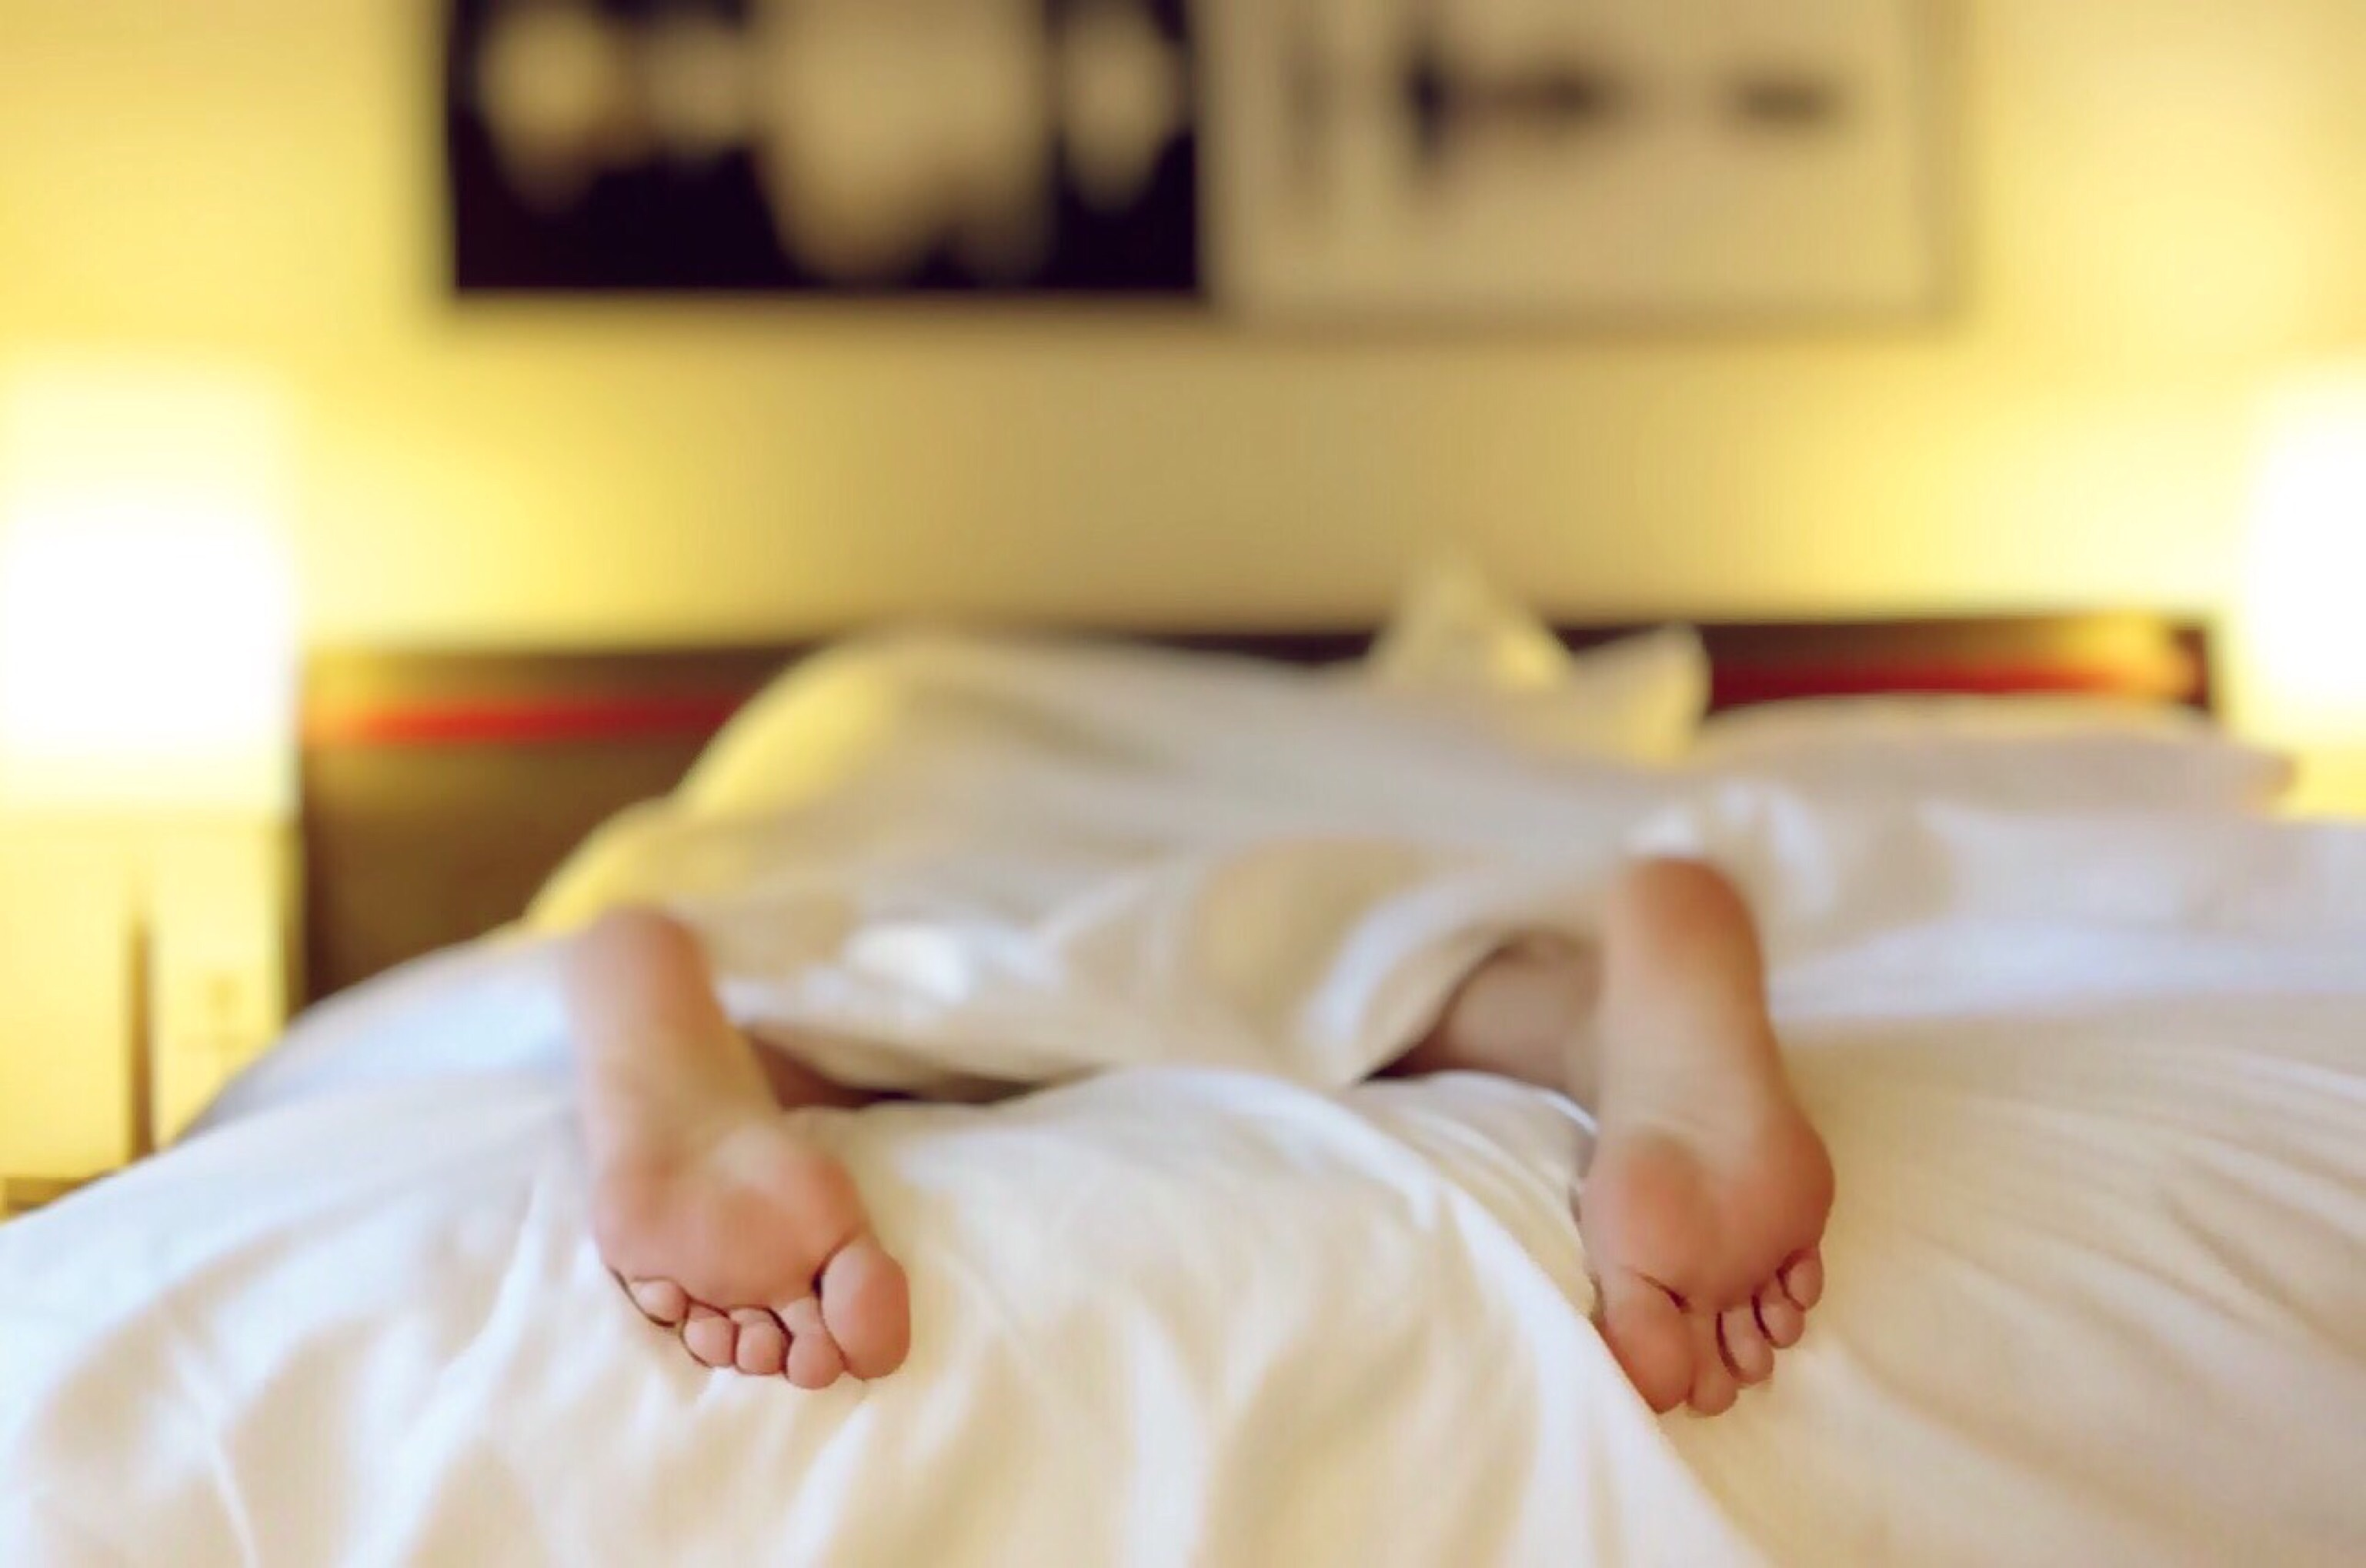 Feet at the end of the bed